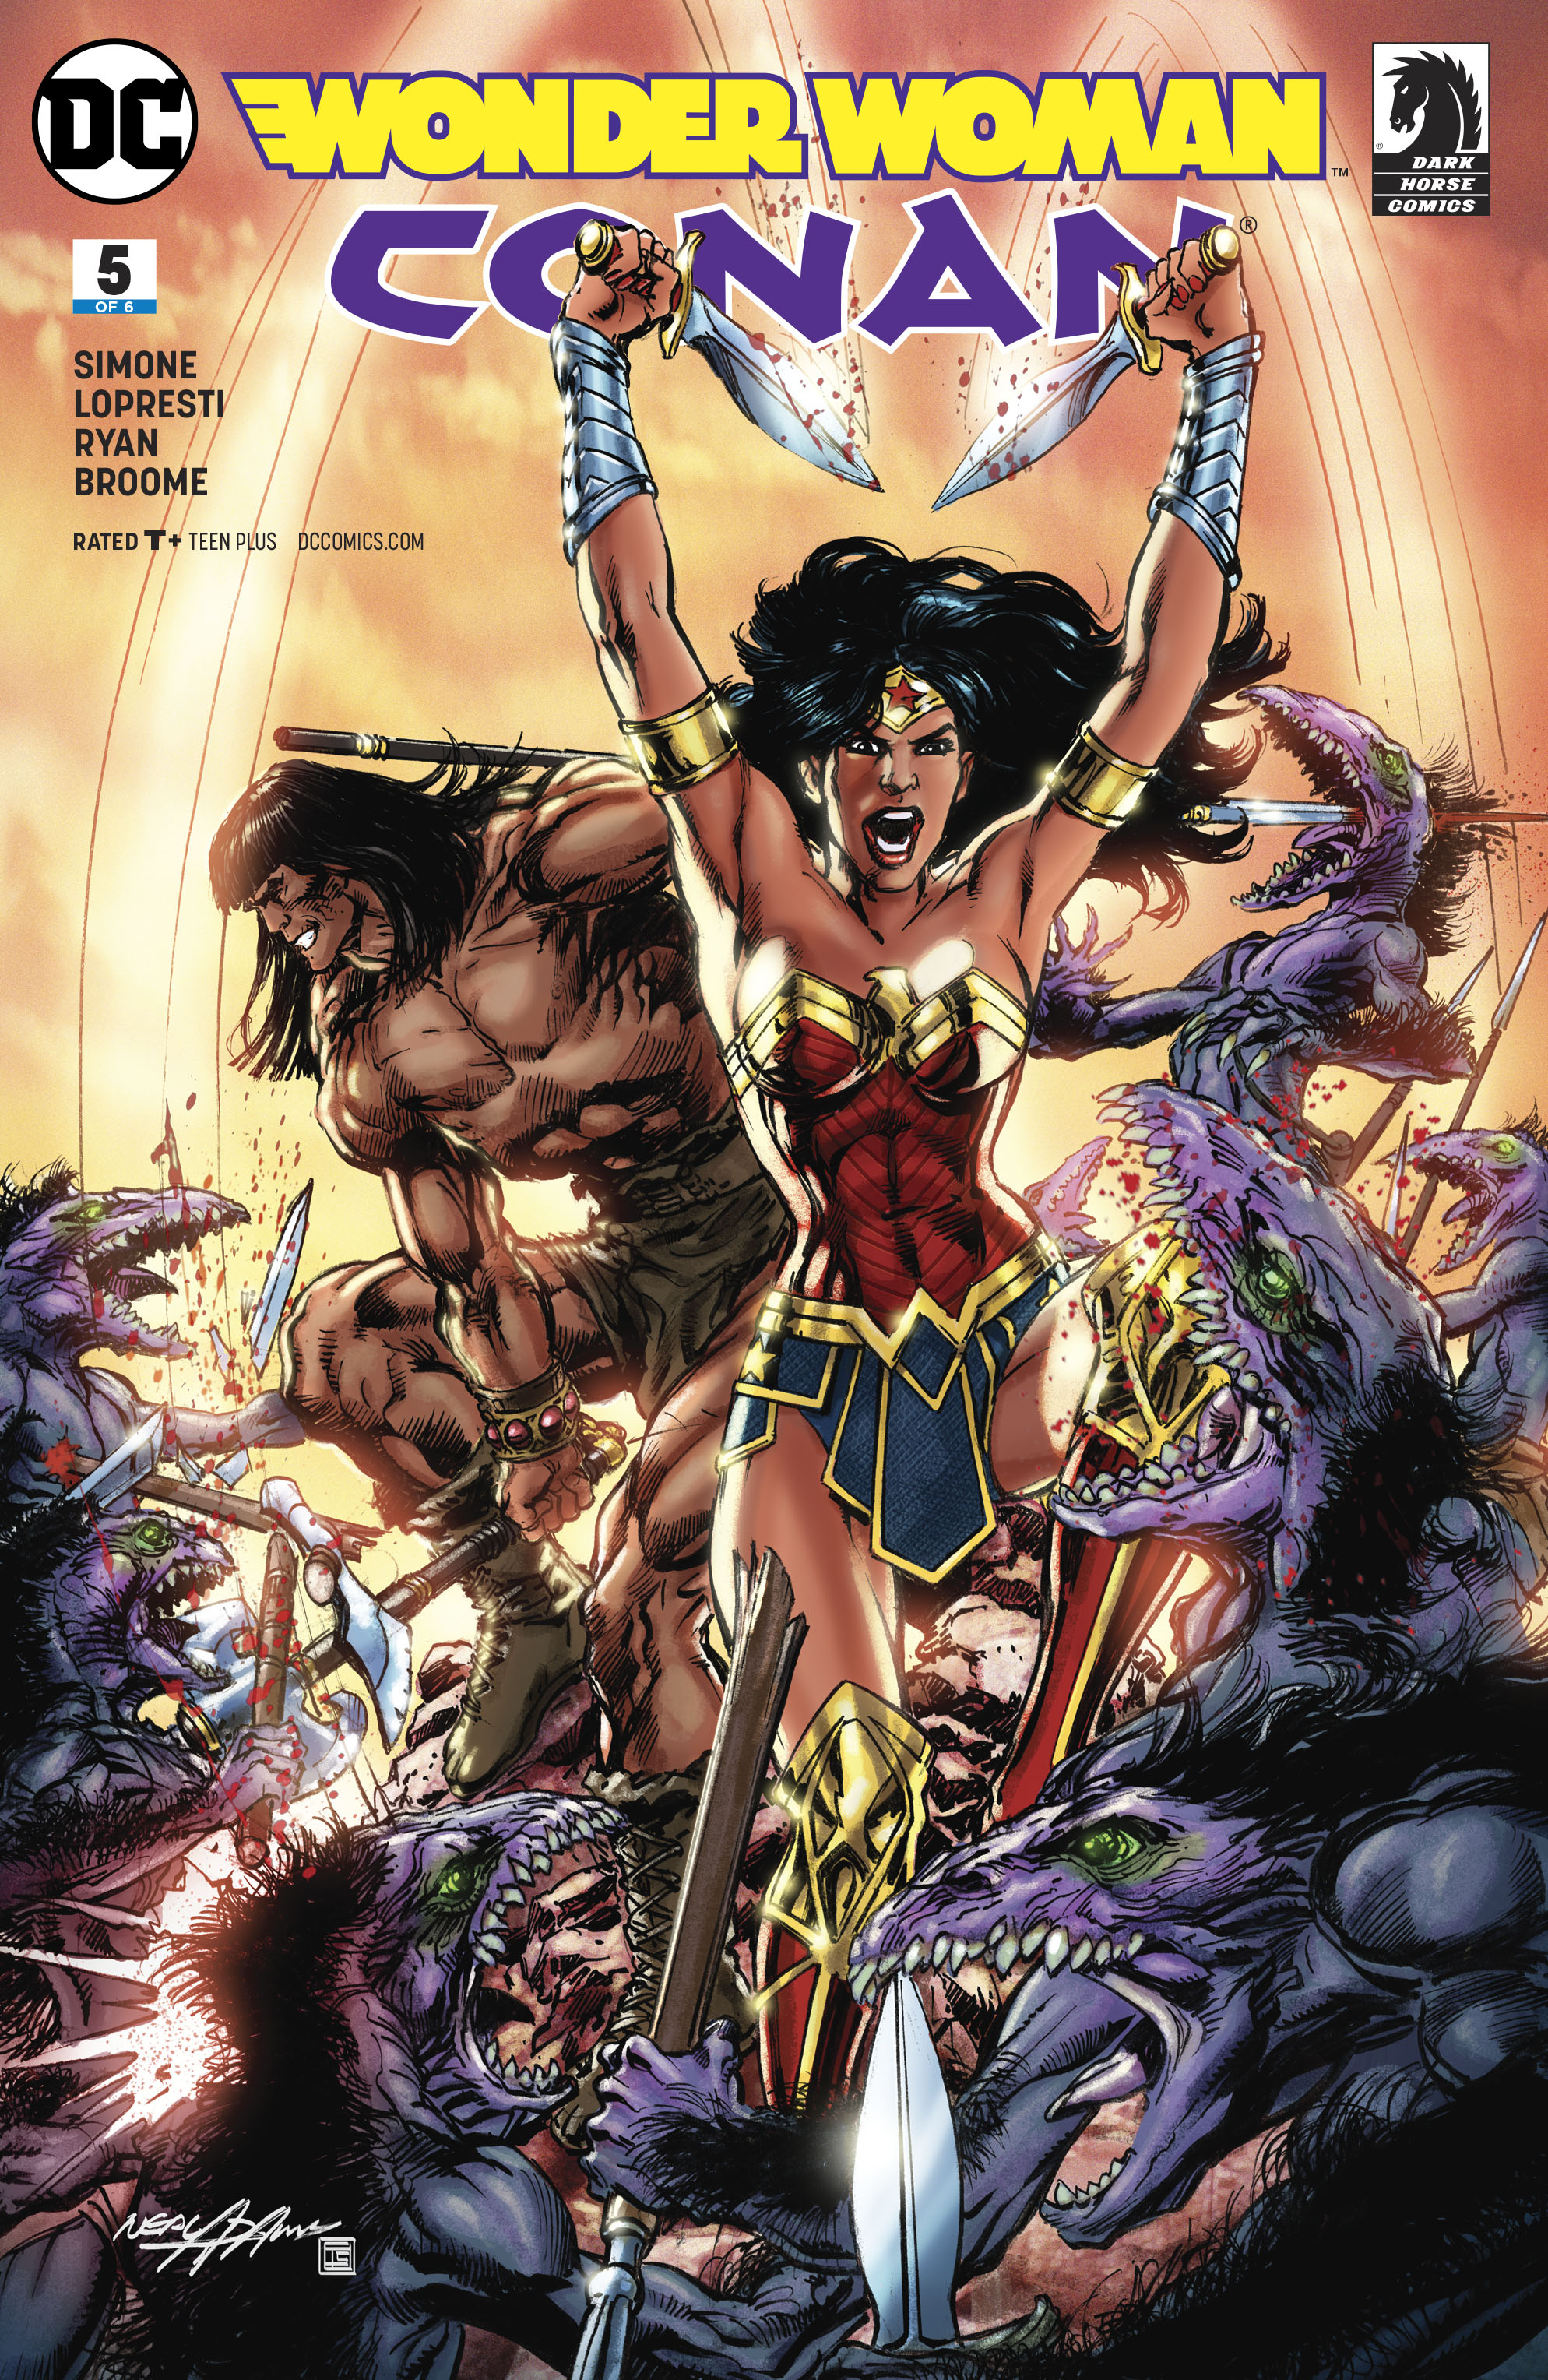 WONDER WOMAN CONAN #5 (OF 6) VAR ED